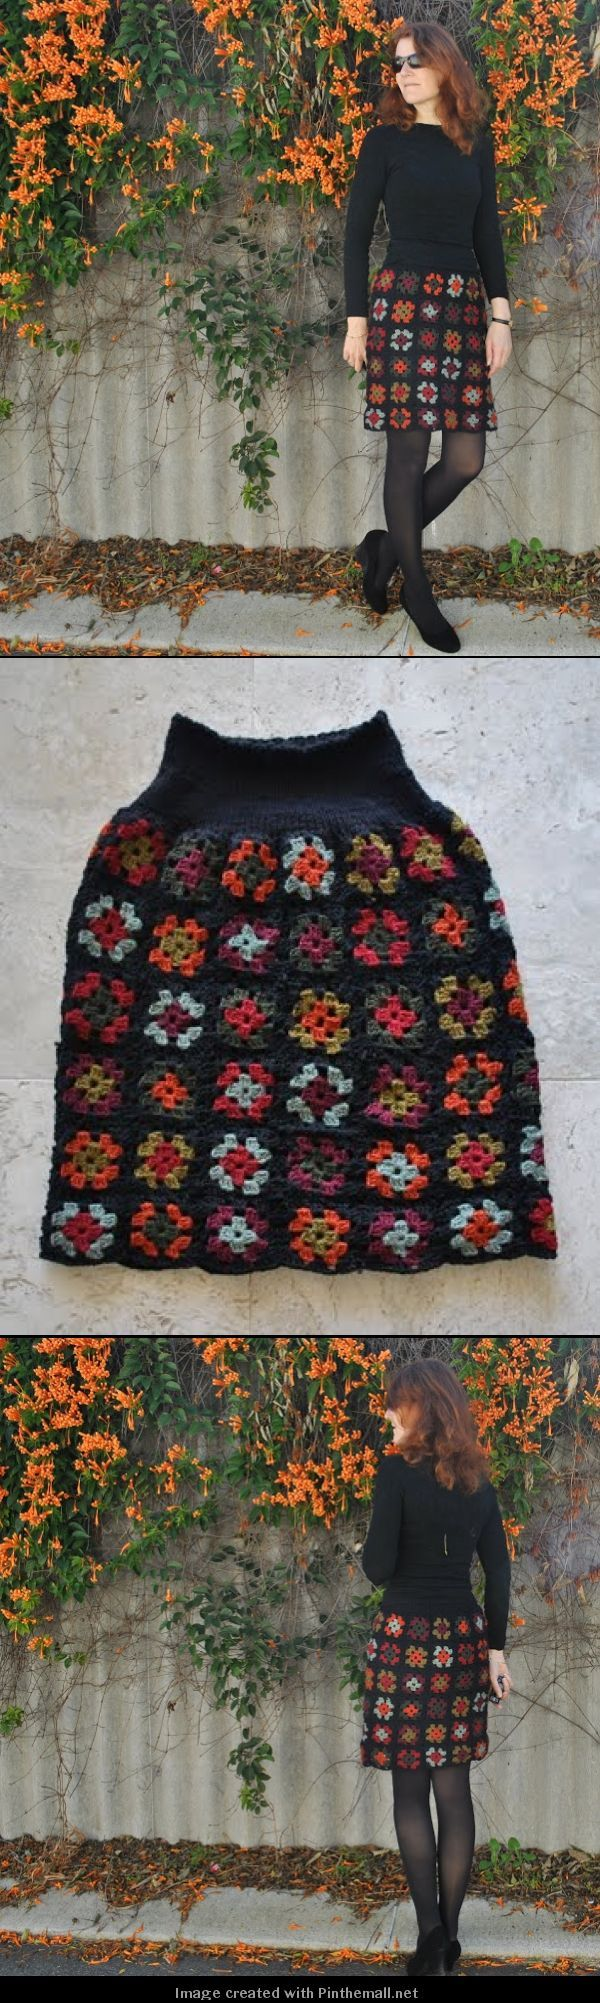 granny square crochet skirt - just wonderful (and Carolyn's from Perth!)